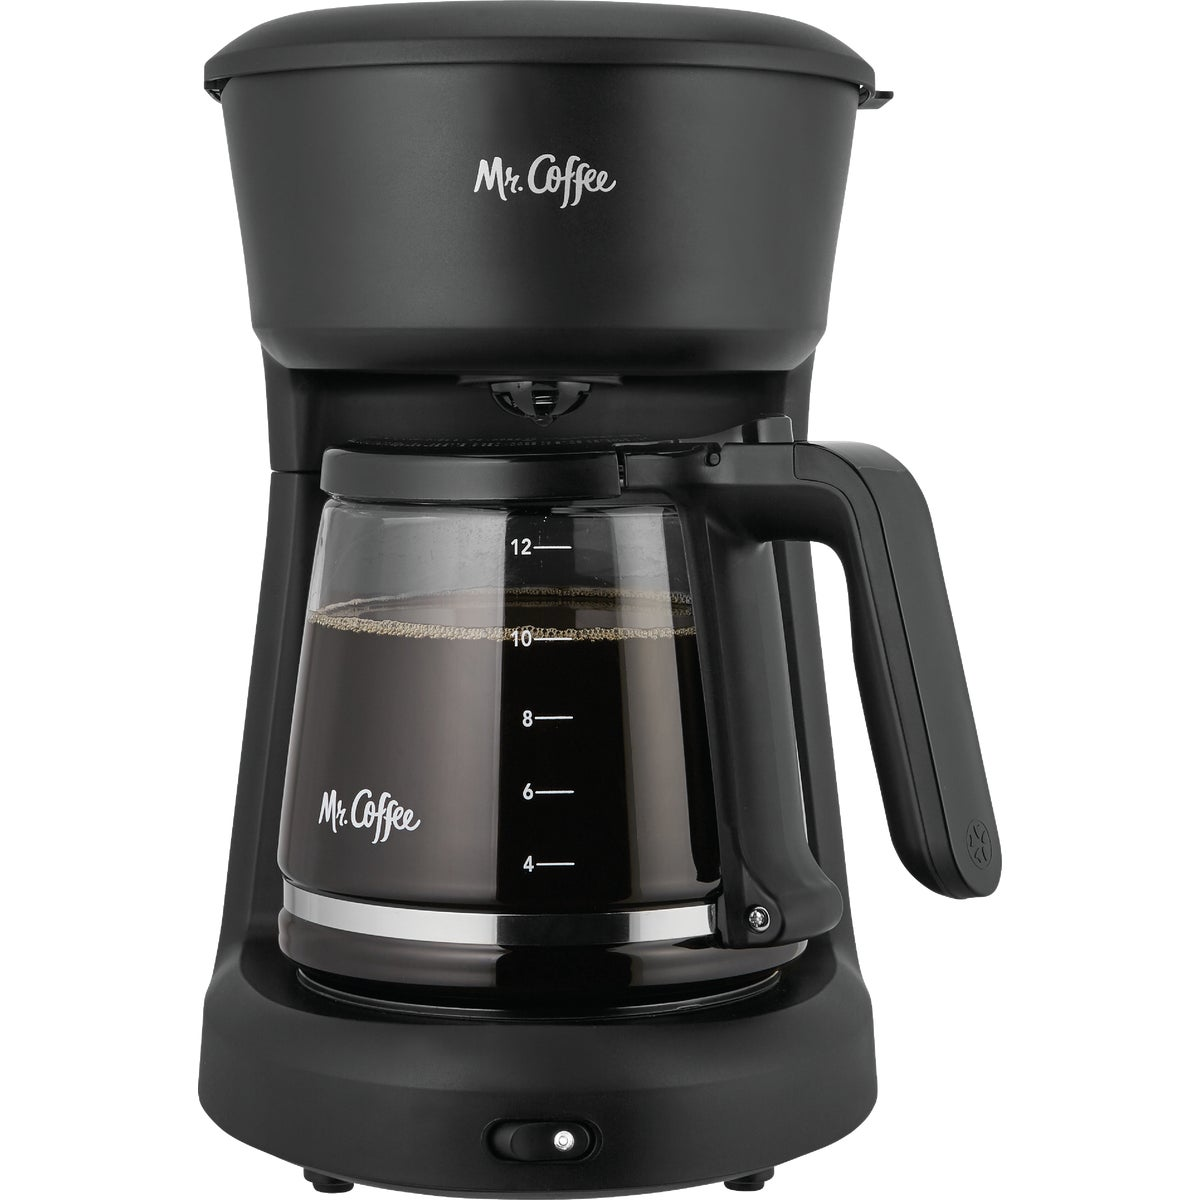 BLK 12 CUP COFFEEMAKER - VB13-NP by Jarden Cs